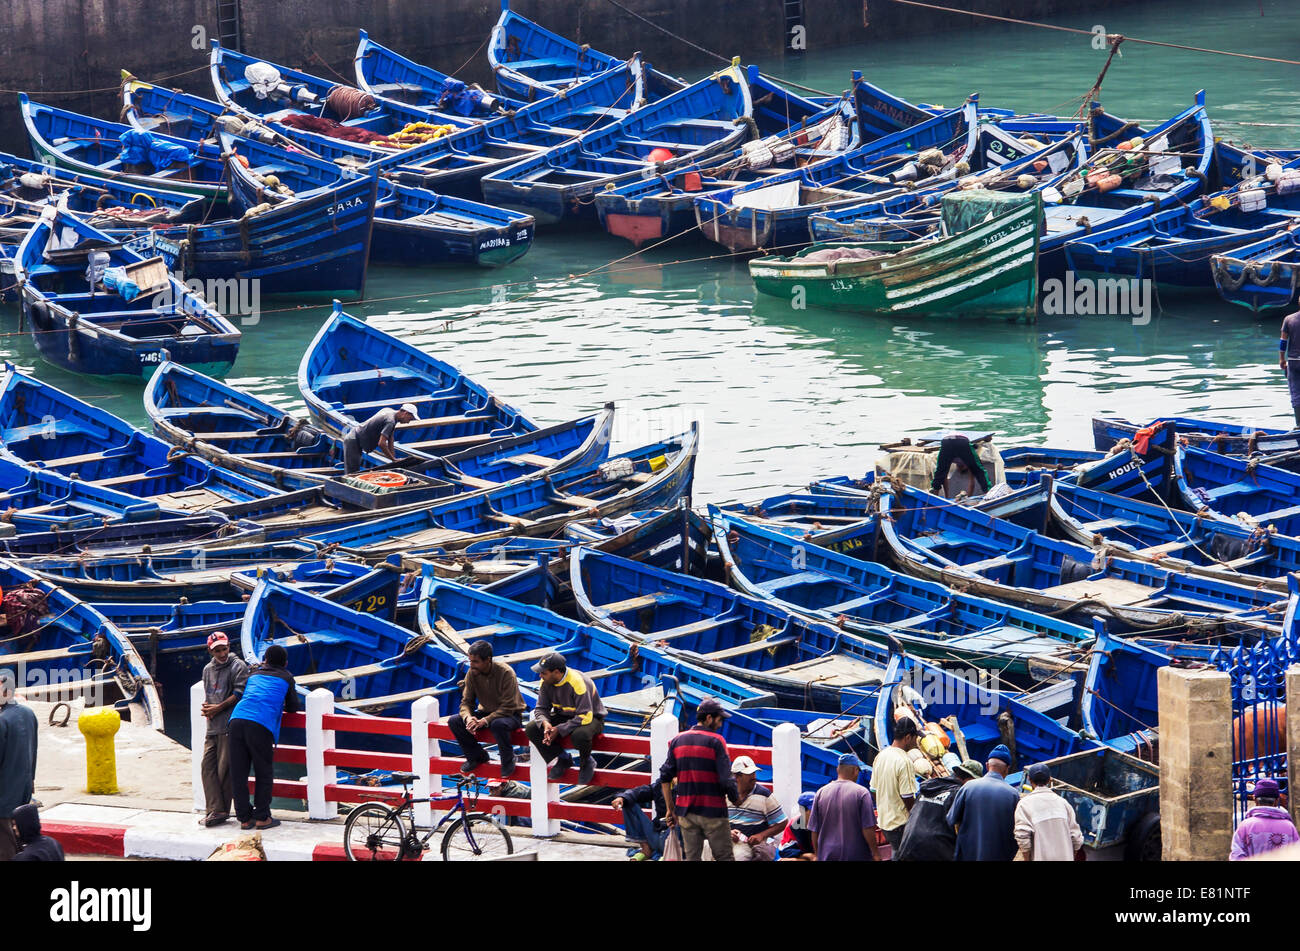 Harbour with fishing boats, Essaouira, Marrakech-Tensift-El Haouz, Morocco - Stock Image